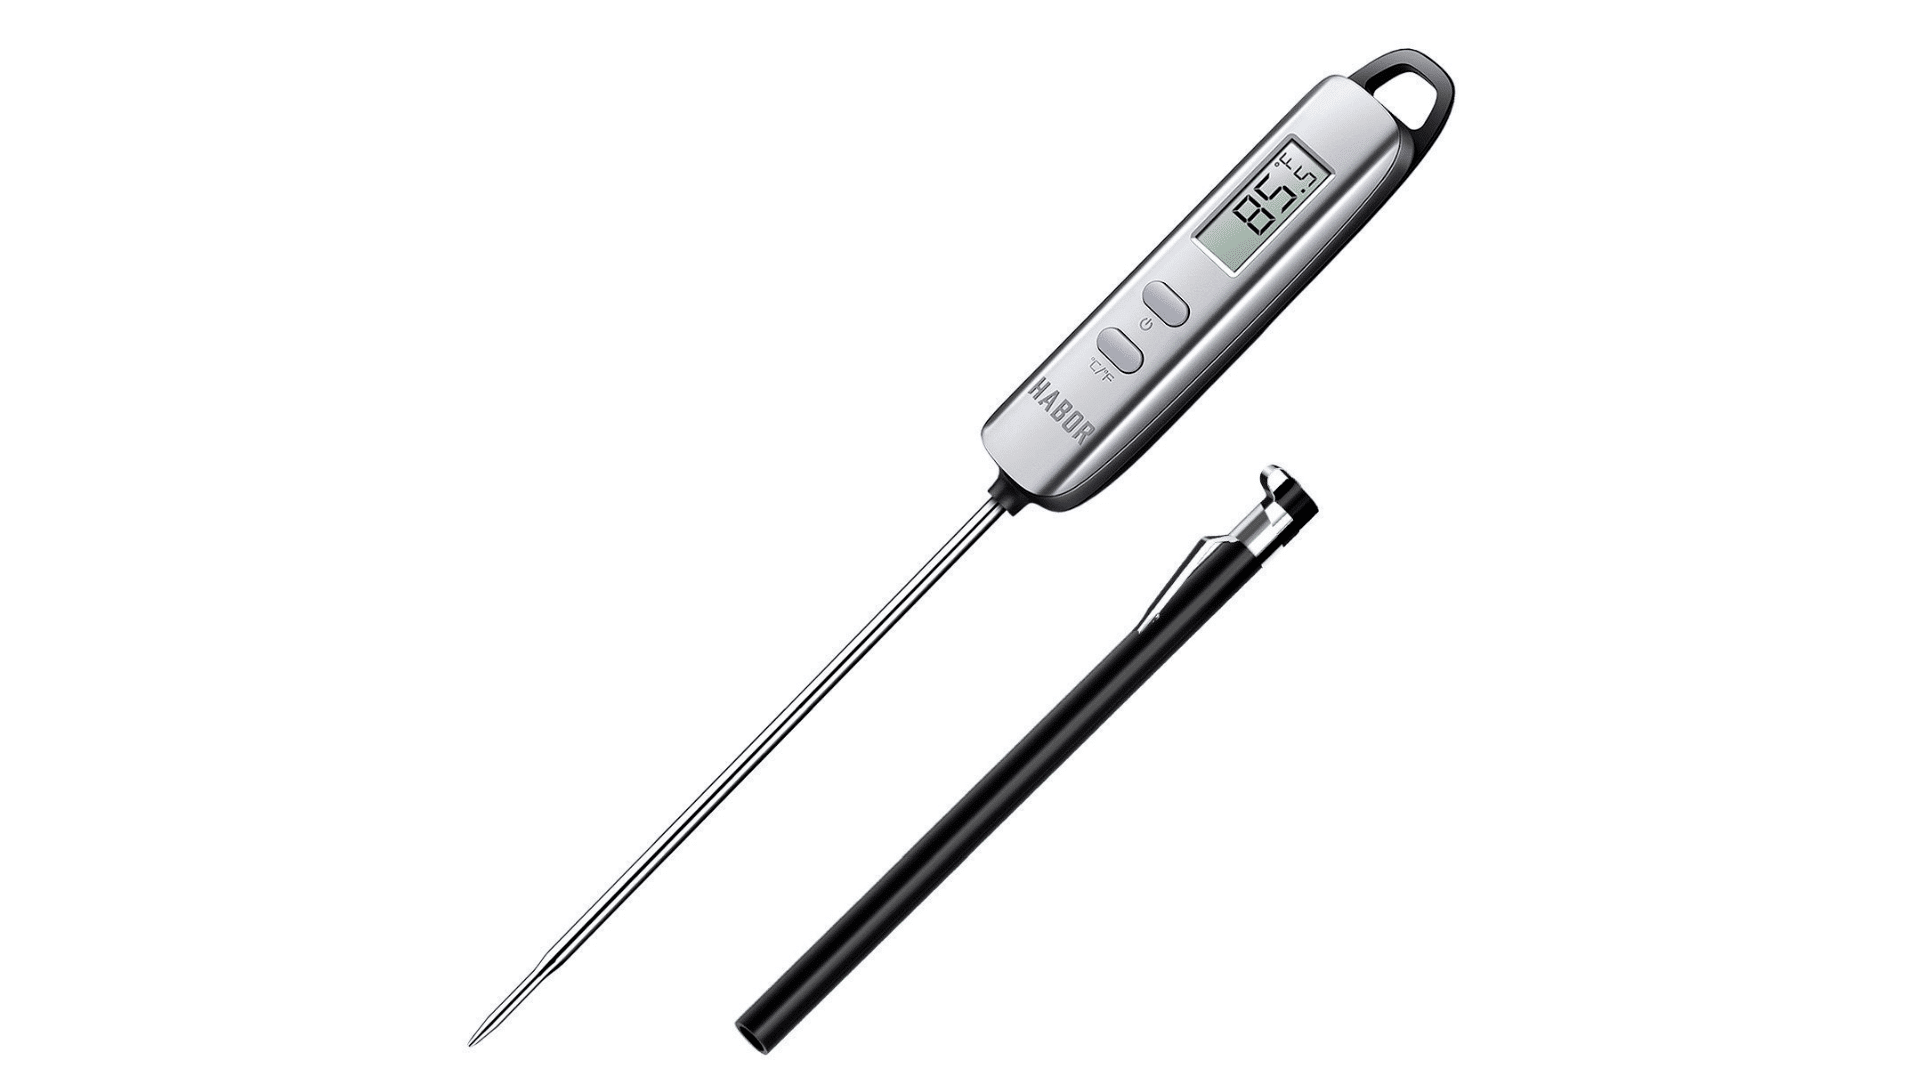 Product image of Habor 022 Instant Read Digital Thermometer